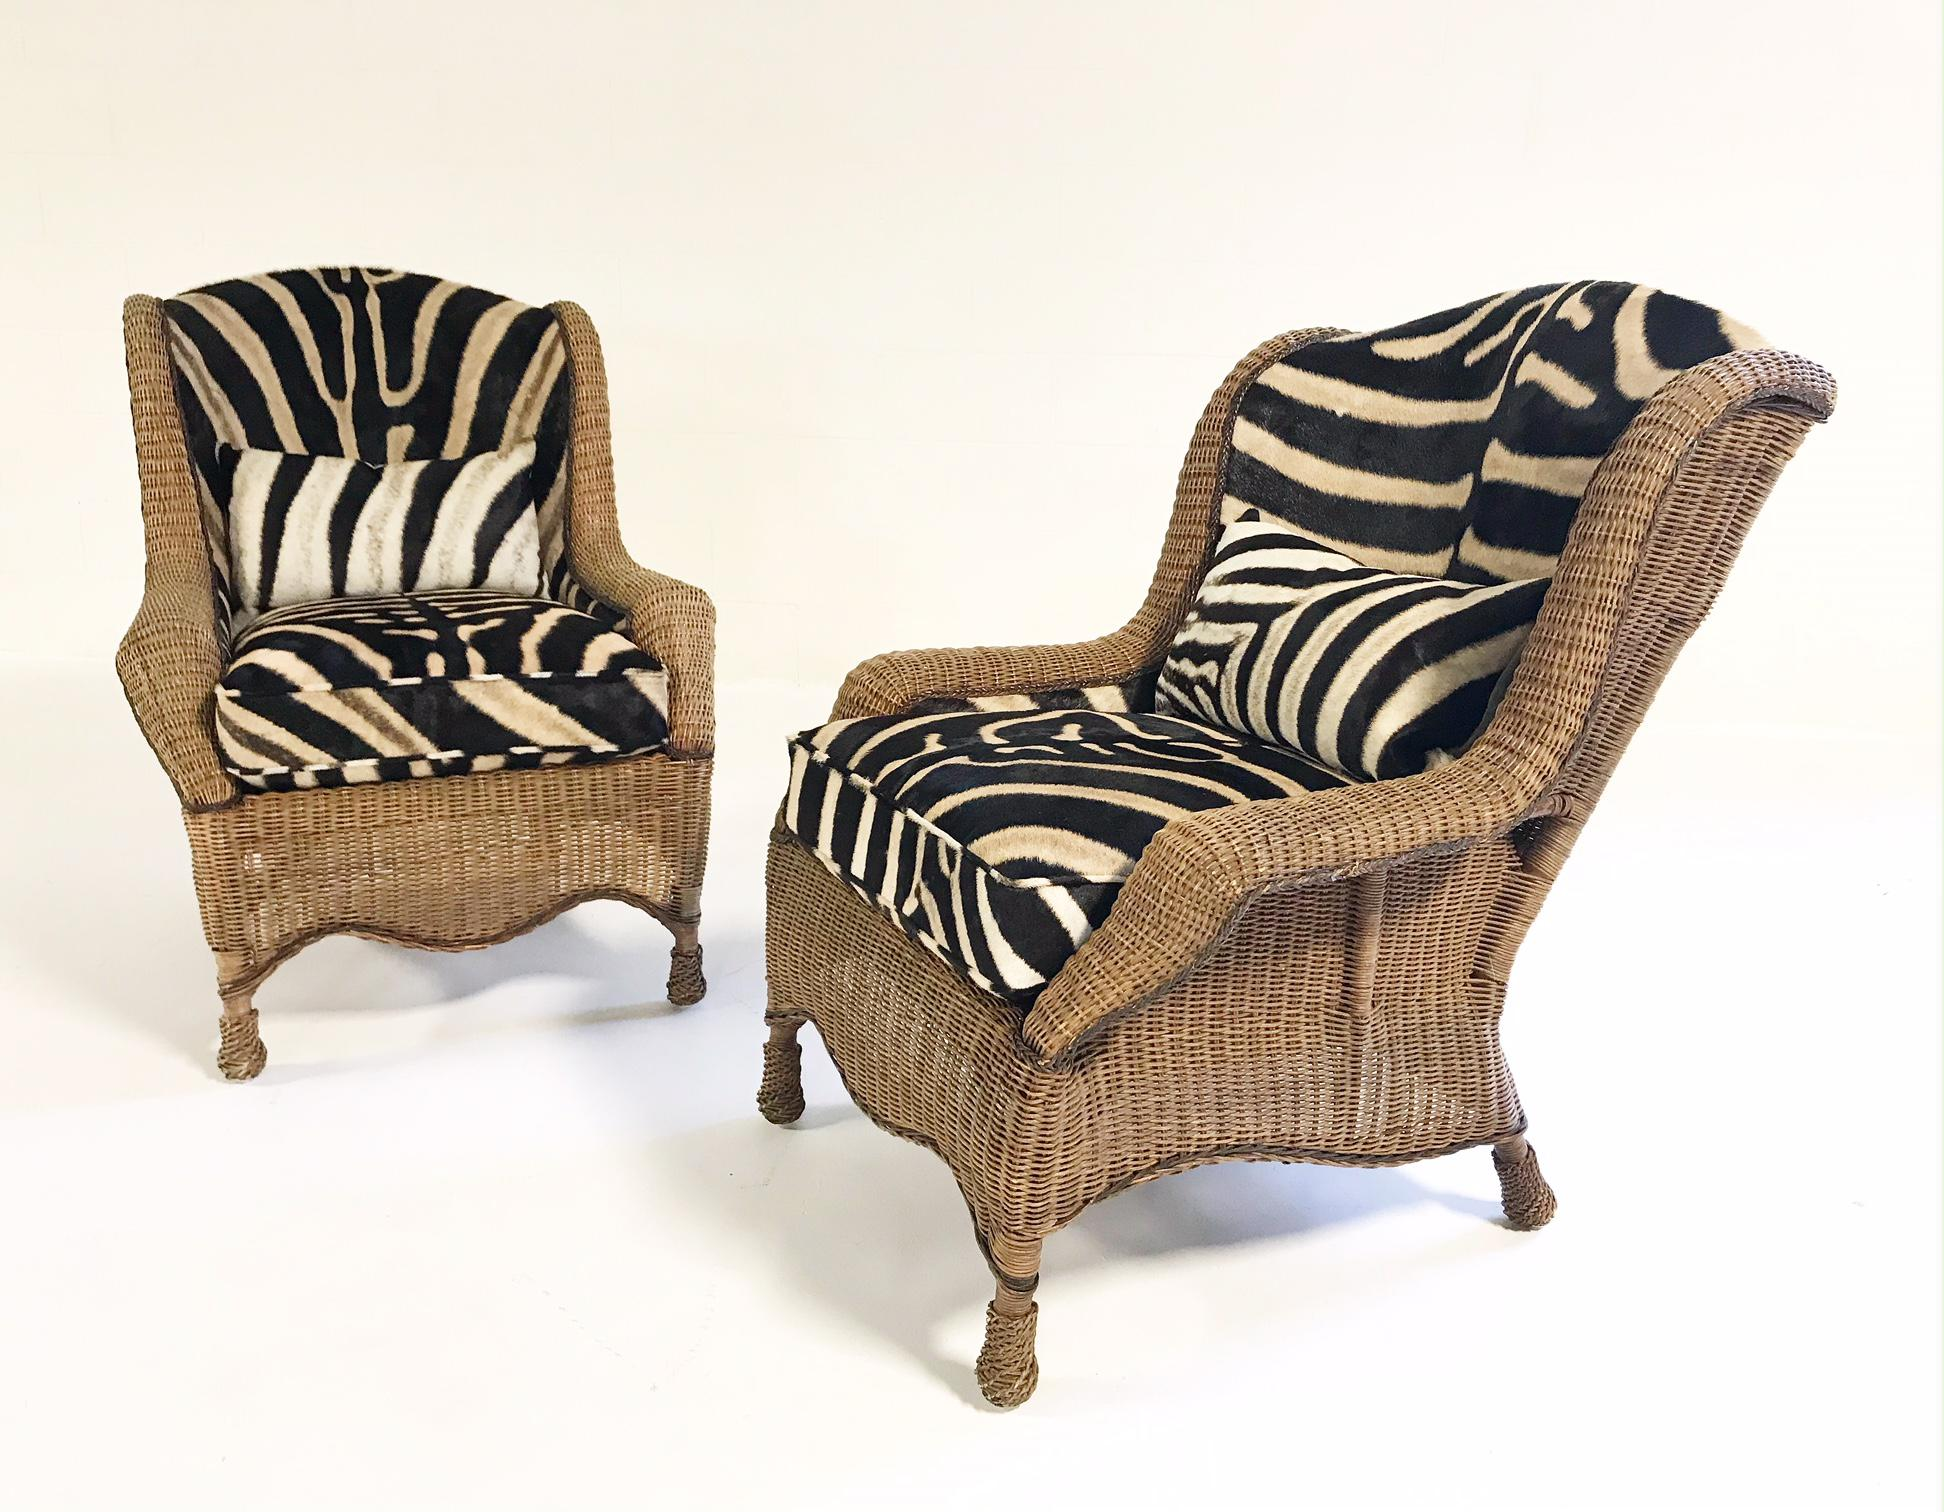 Etonnant Late 20th Century Vintage Ralph Lauren Wicker Wingback Chairs Restored In  Zebra Hide   A Pair